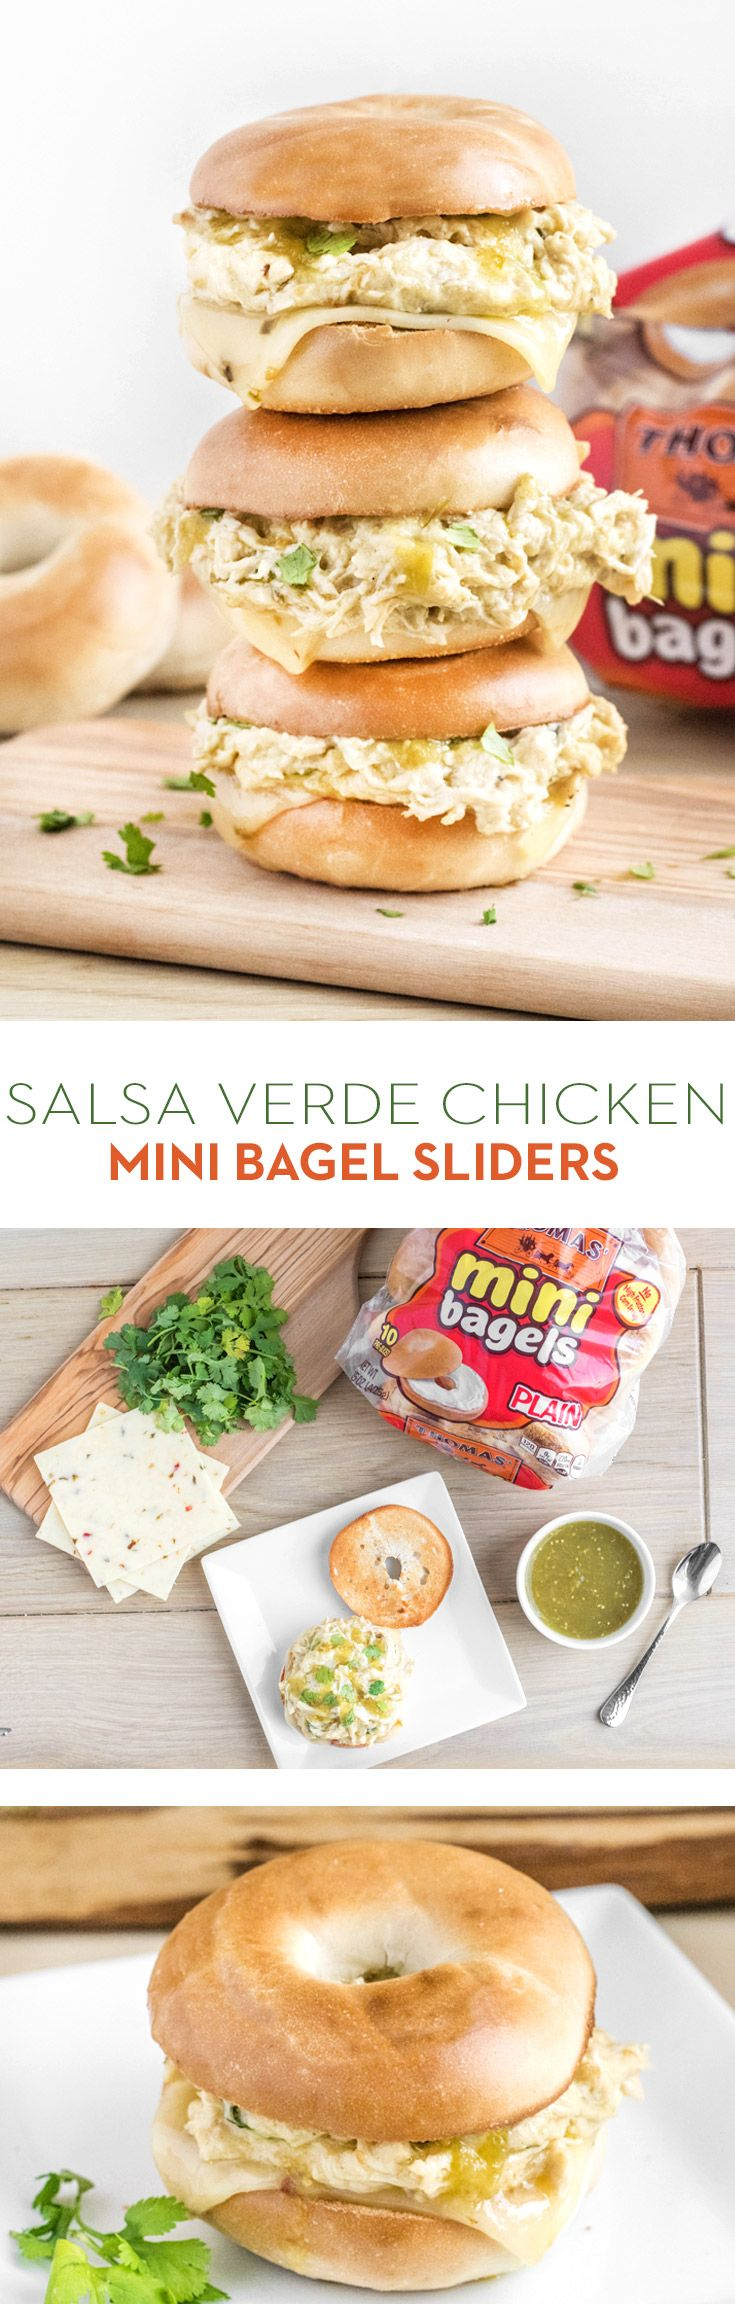 Salsa Verde Chicken Mini Bagel Sliders: Cold weather months call for simple Crock-Pot recipes, and this one's a crowd pleaser. Combine boneless chicken breasts, salsa verde, cream cheese and Colby Jack cheese in a Crock-Pot, cook and enjoy on Thomas' Plain Mini Bagels with a slice of Pepper Jack cheese!